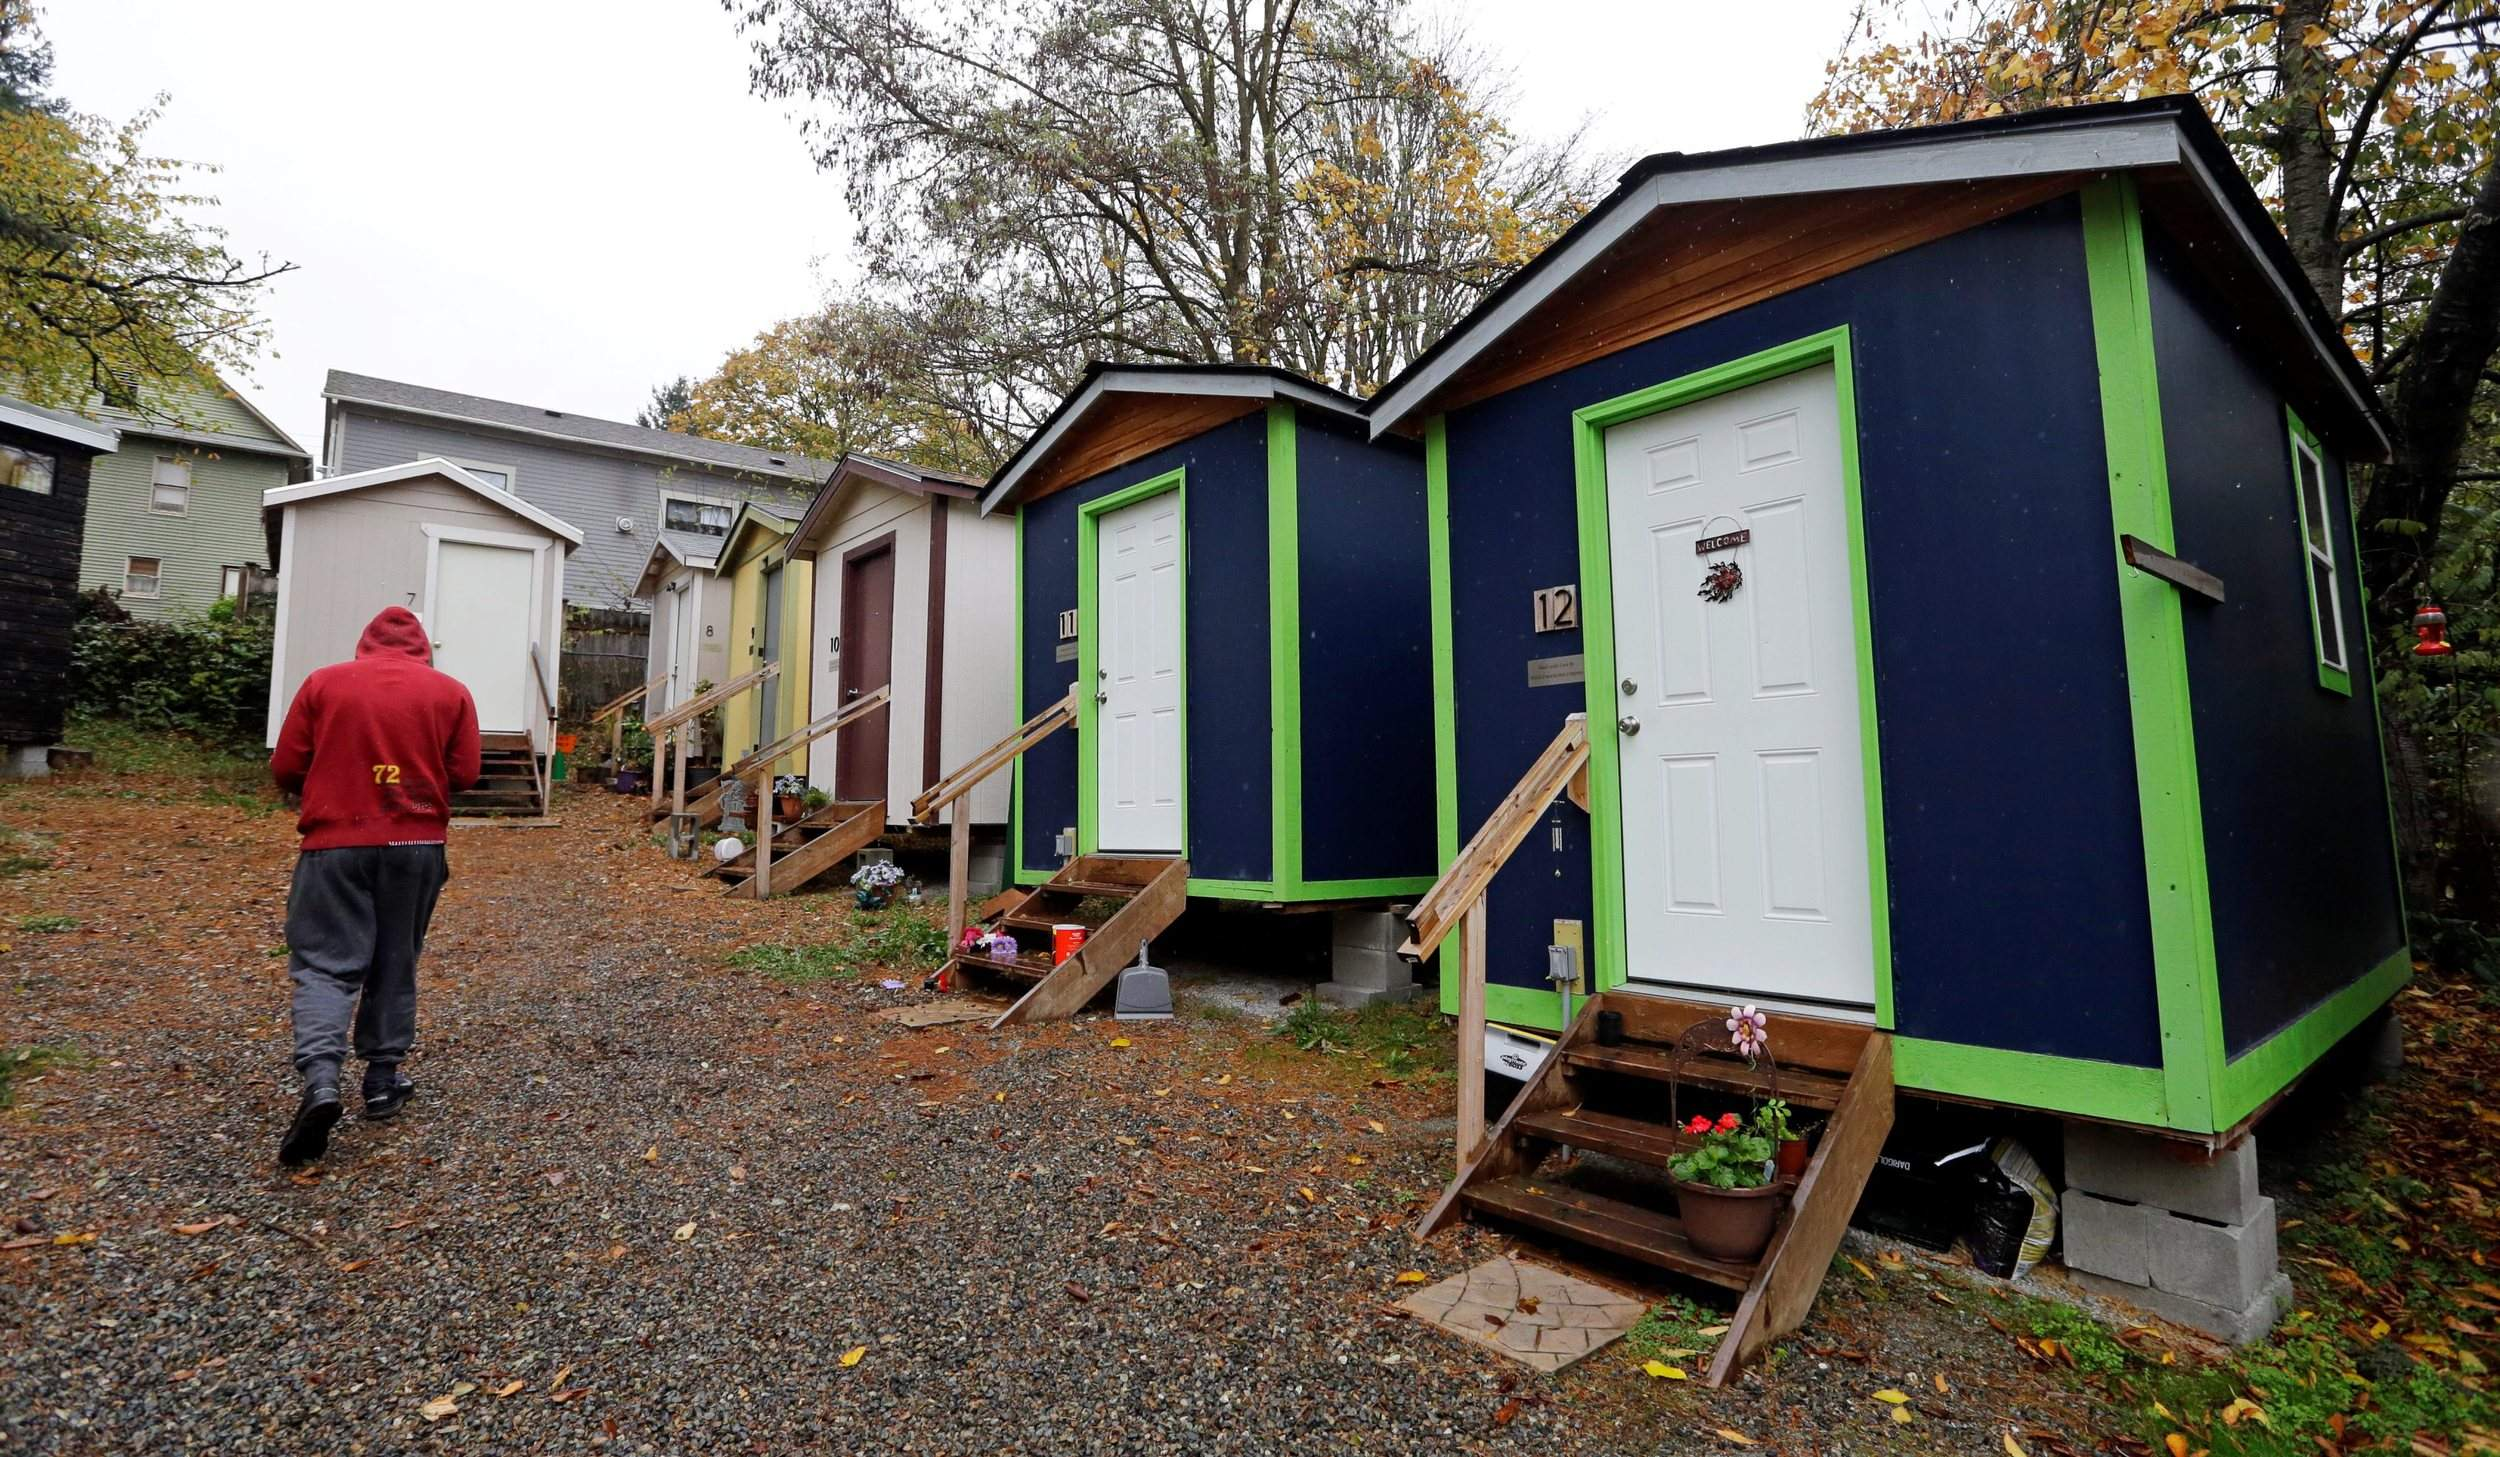 tiny houses for homeless. A Resident Walks Past Row Of Tiny Houses At Homeless Encampment In Seattle Where Full-size Homes Stand Behind On Nov. 9. For